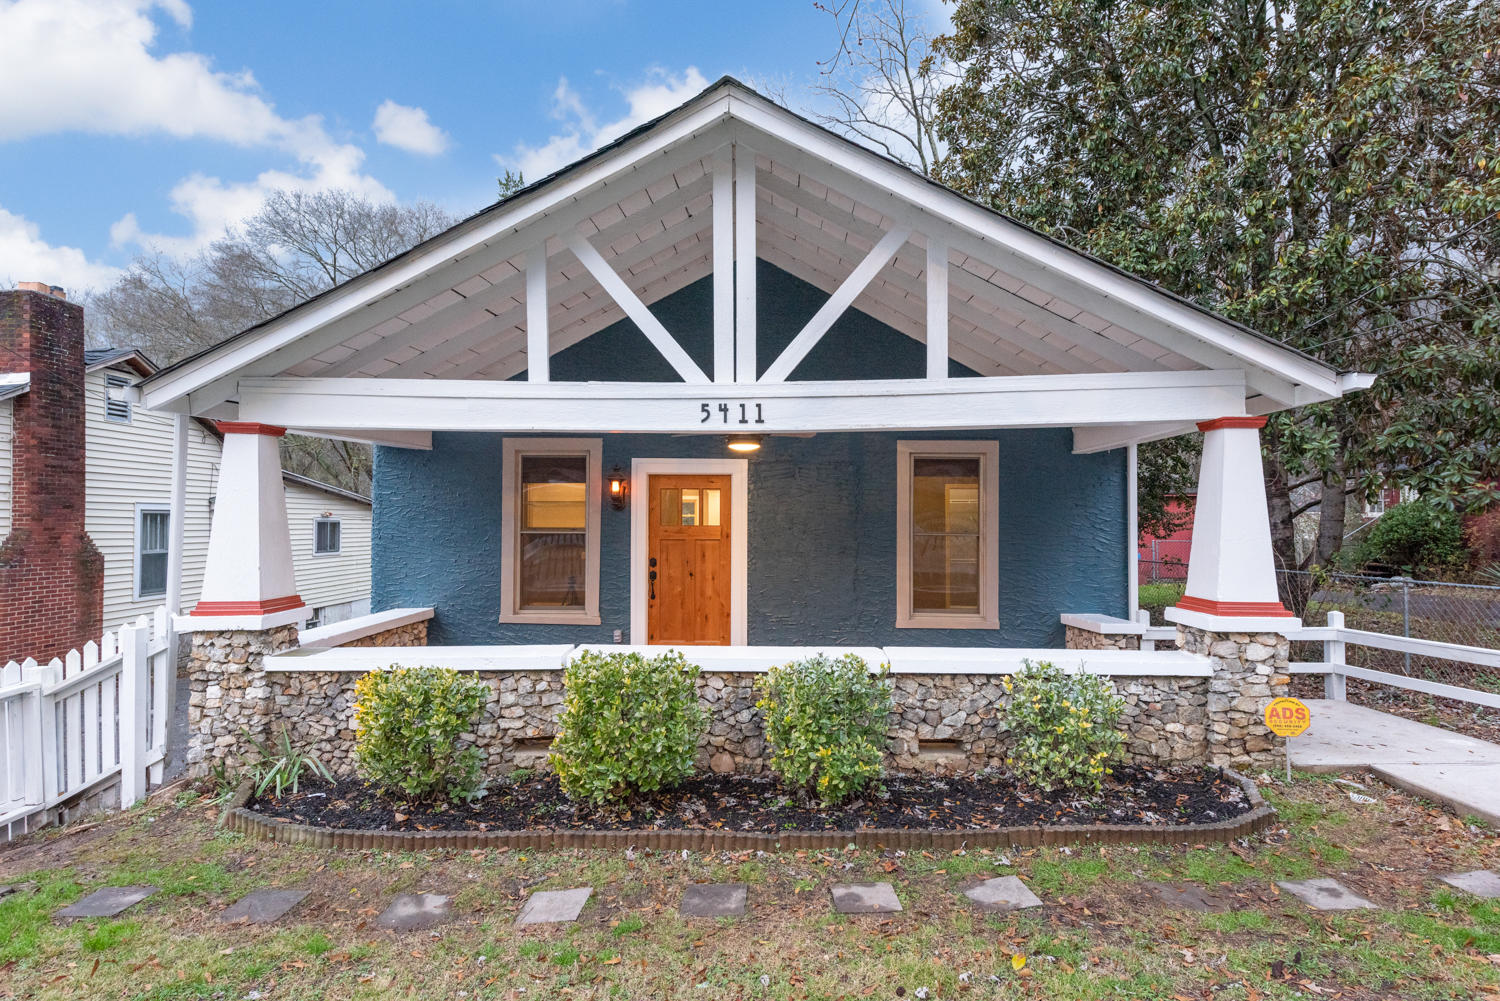 5411  Tennessee  Ave, Chattanooga in Hamilton County, TN 37409 Home for Sale